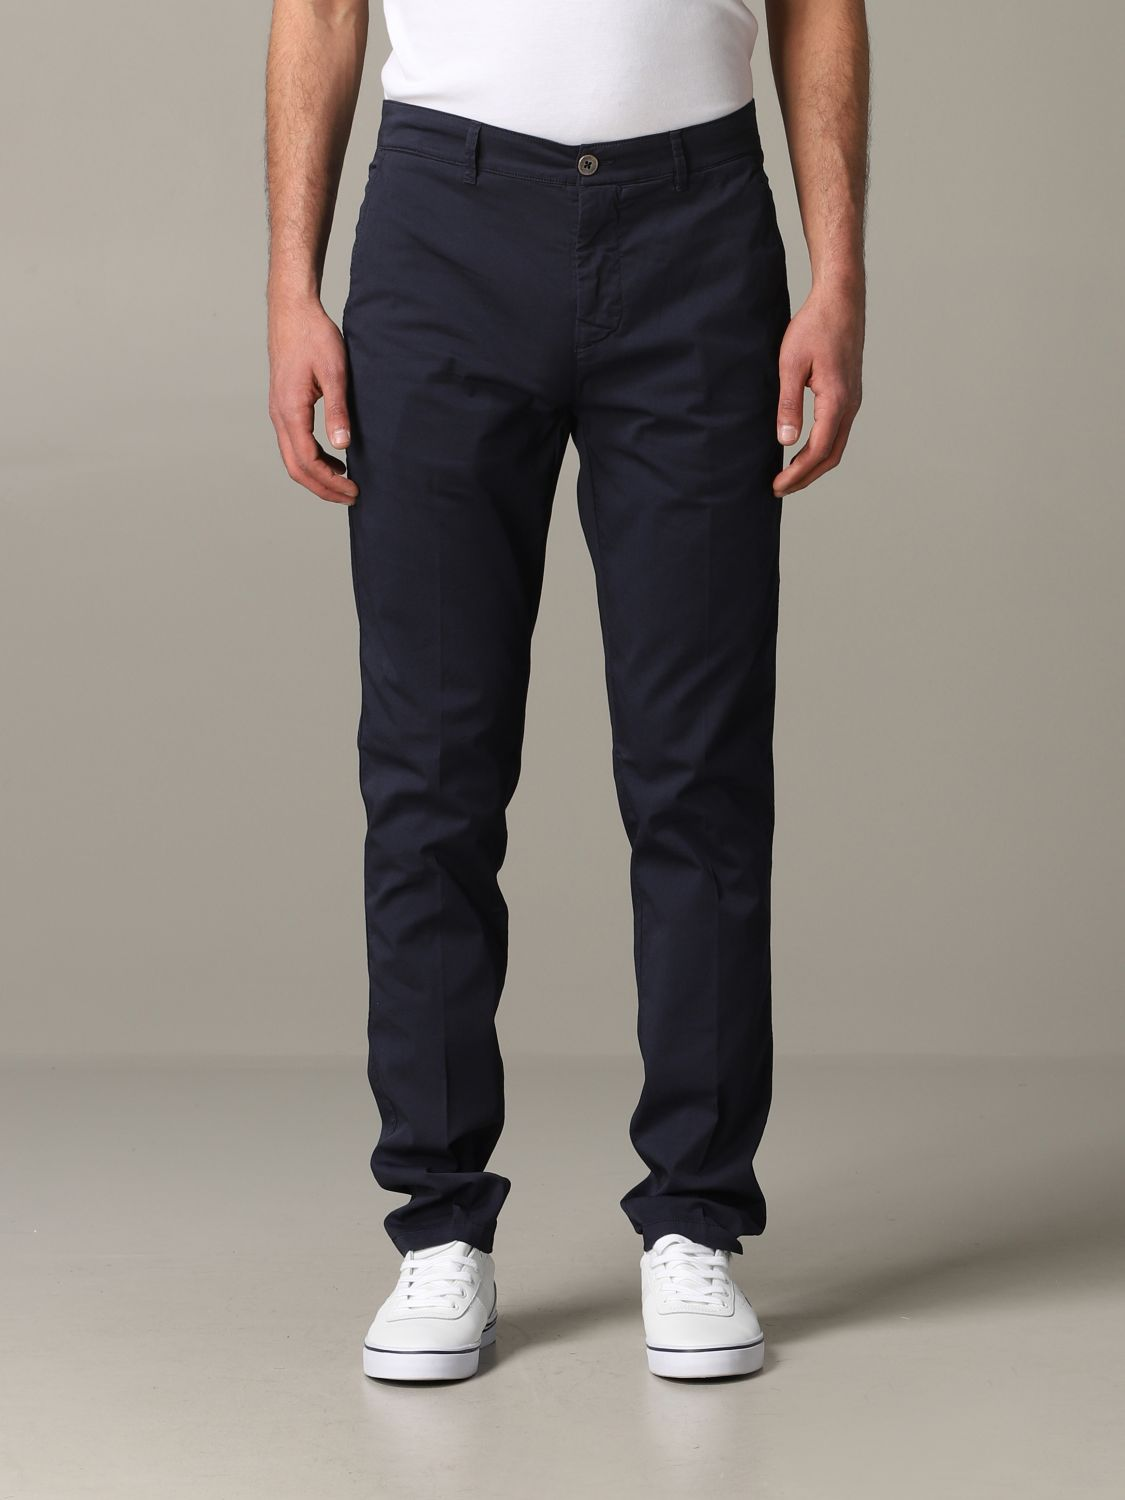 Hose Brooksfield: Hose herren Brooksfield navy 1